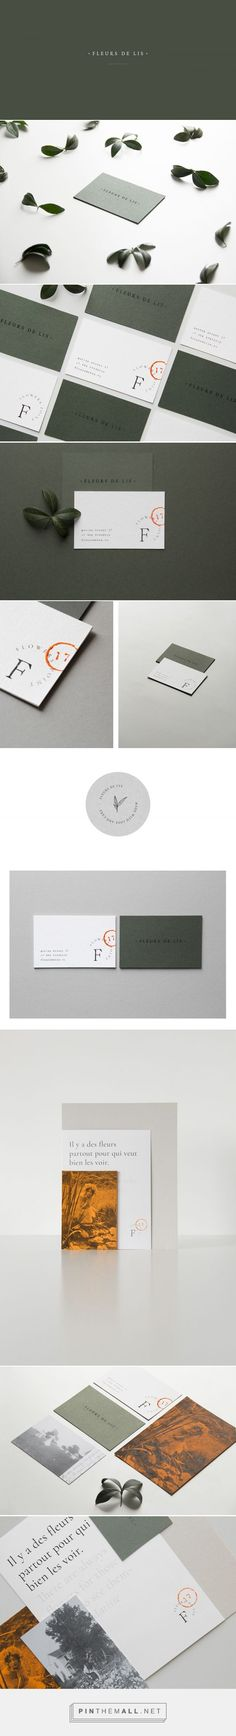 FLEUR DE LIS Flower Shop Branding by Anastasia Ko | Fivestar Branding Agency – Design and Branding Agency & Curated Inspiration Gallery